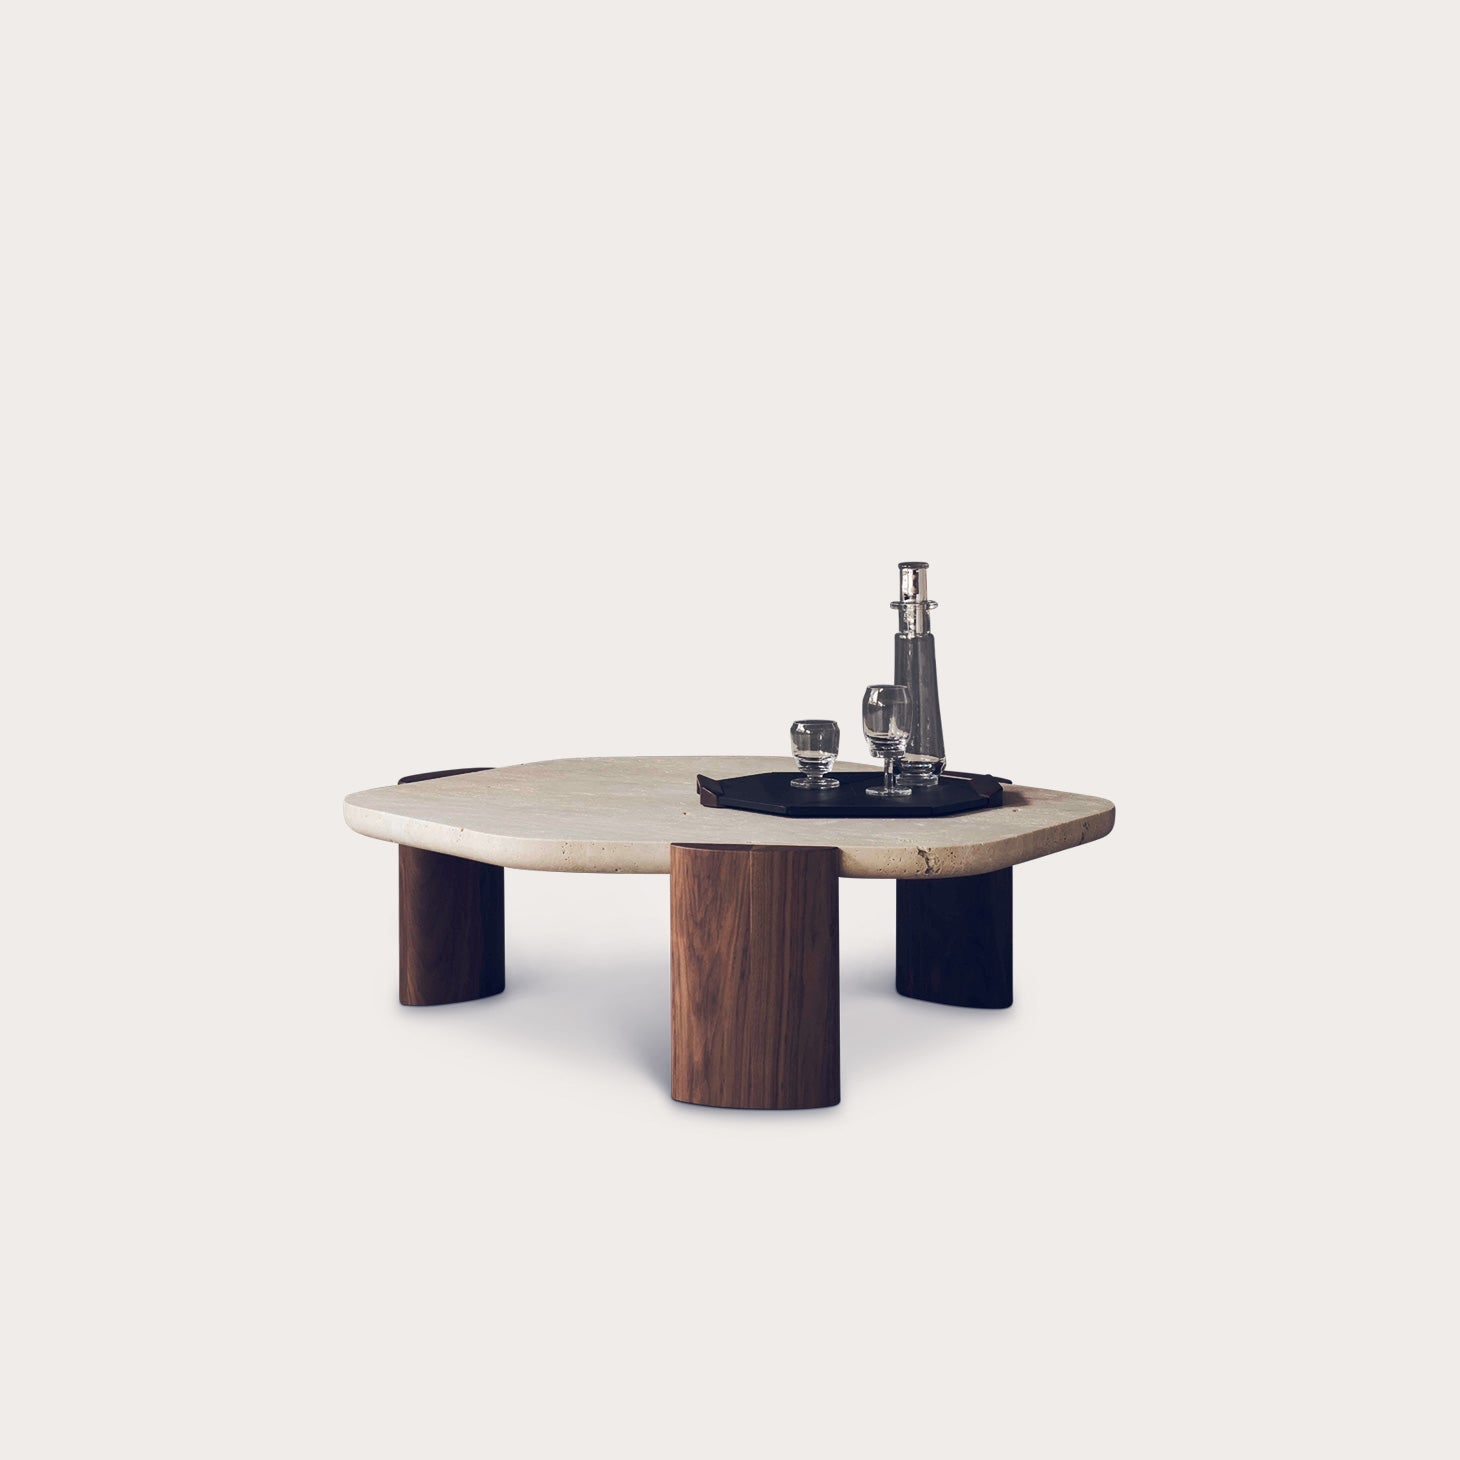 LOB Tables Christophe Delcourt Designer Furniture Sku: 765-230-10020